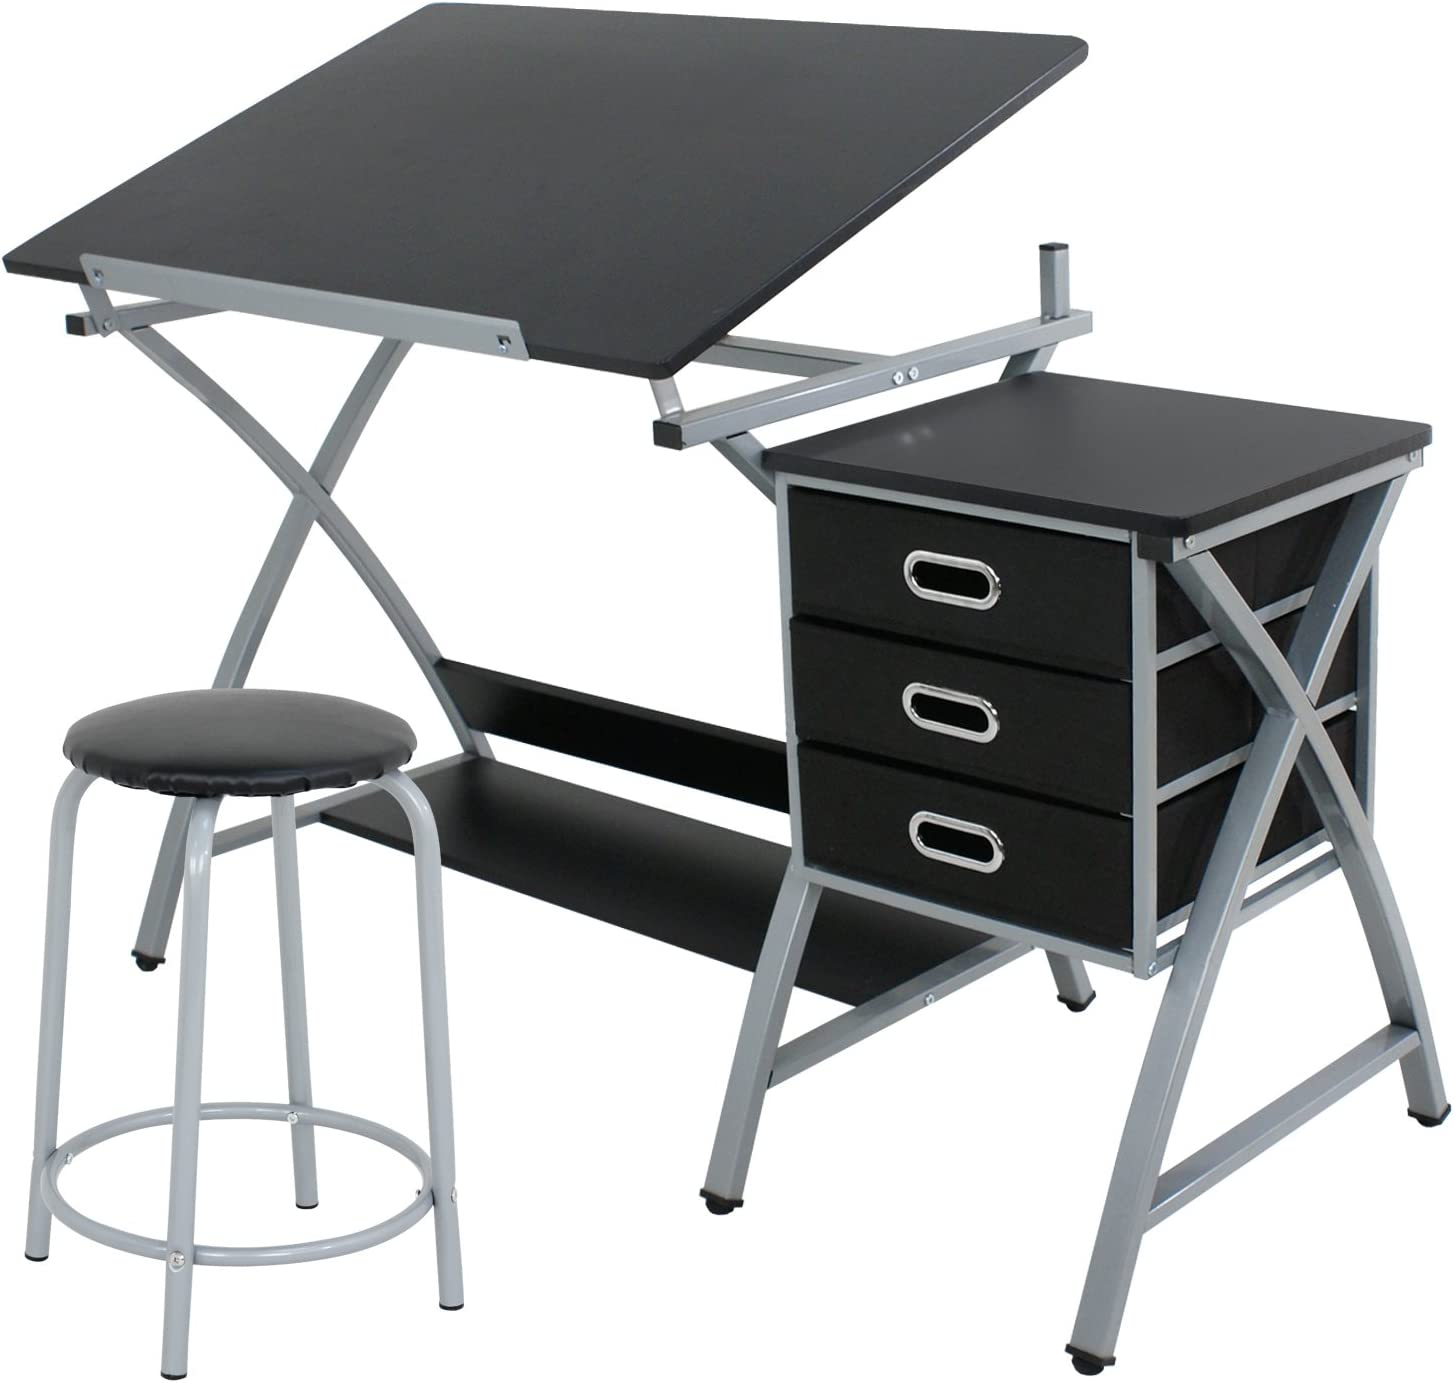 Super Deal wholesale Adjustable Drafting Now on sale Table Art Drawing Craft Cr Desk